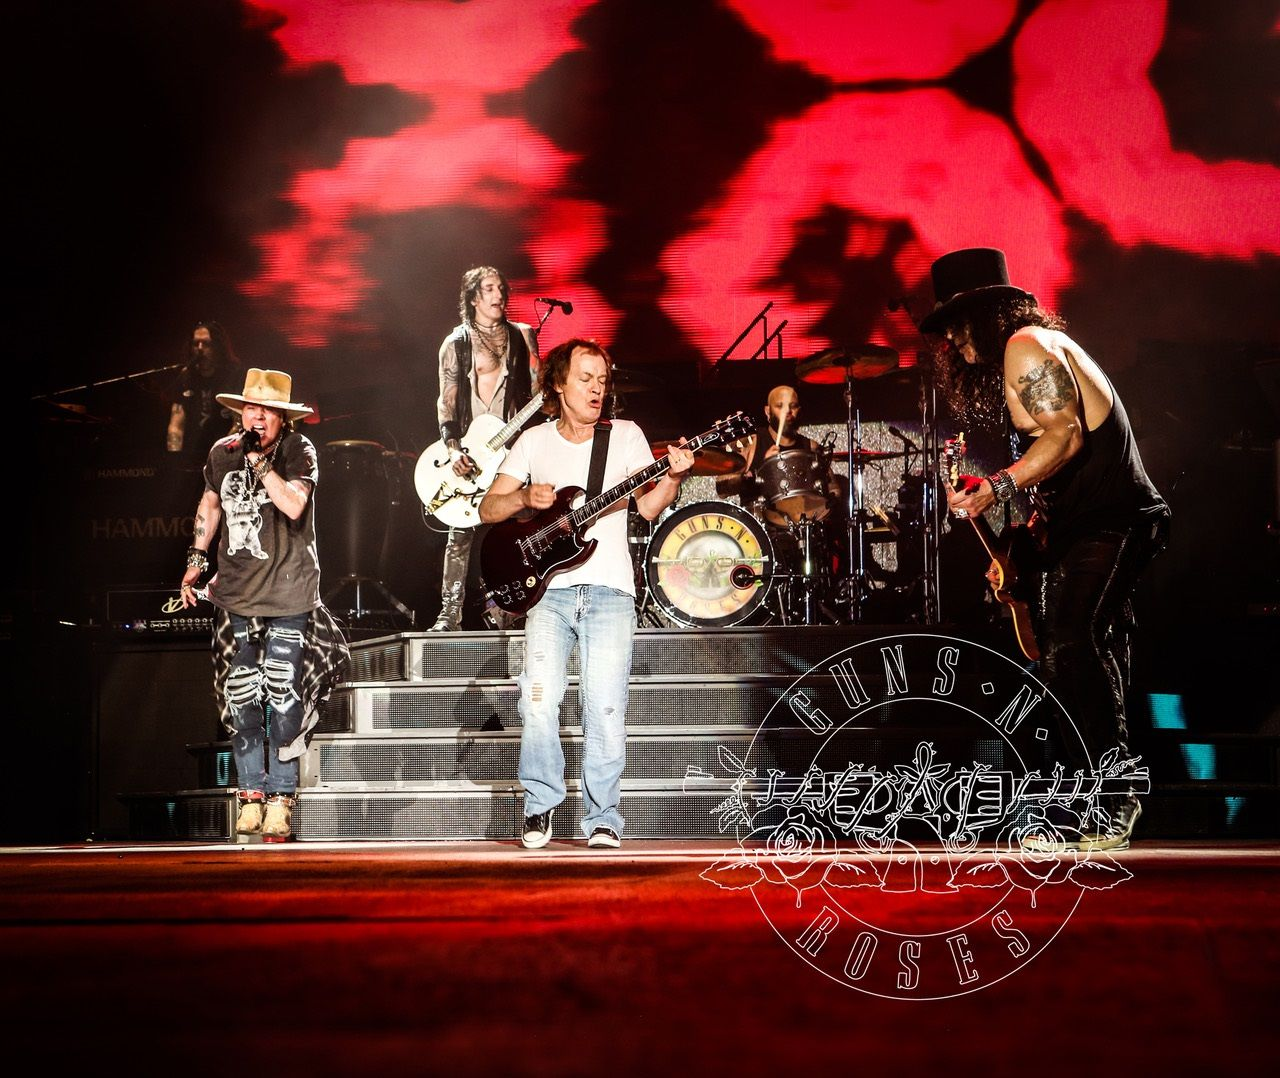 Guns N' Roses To Tour South Africa For The First Time photo